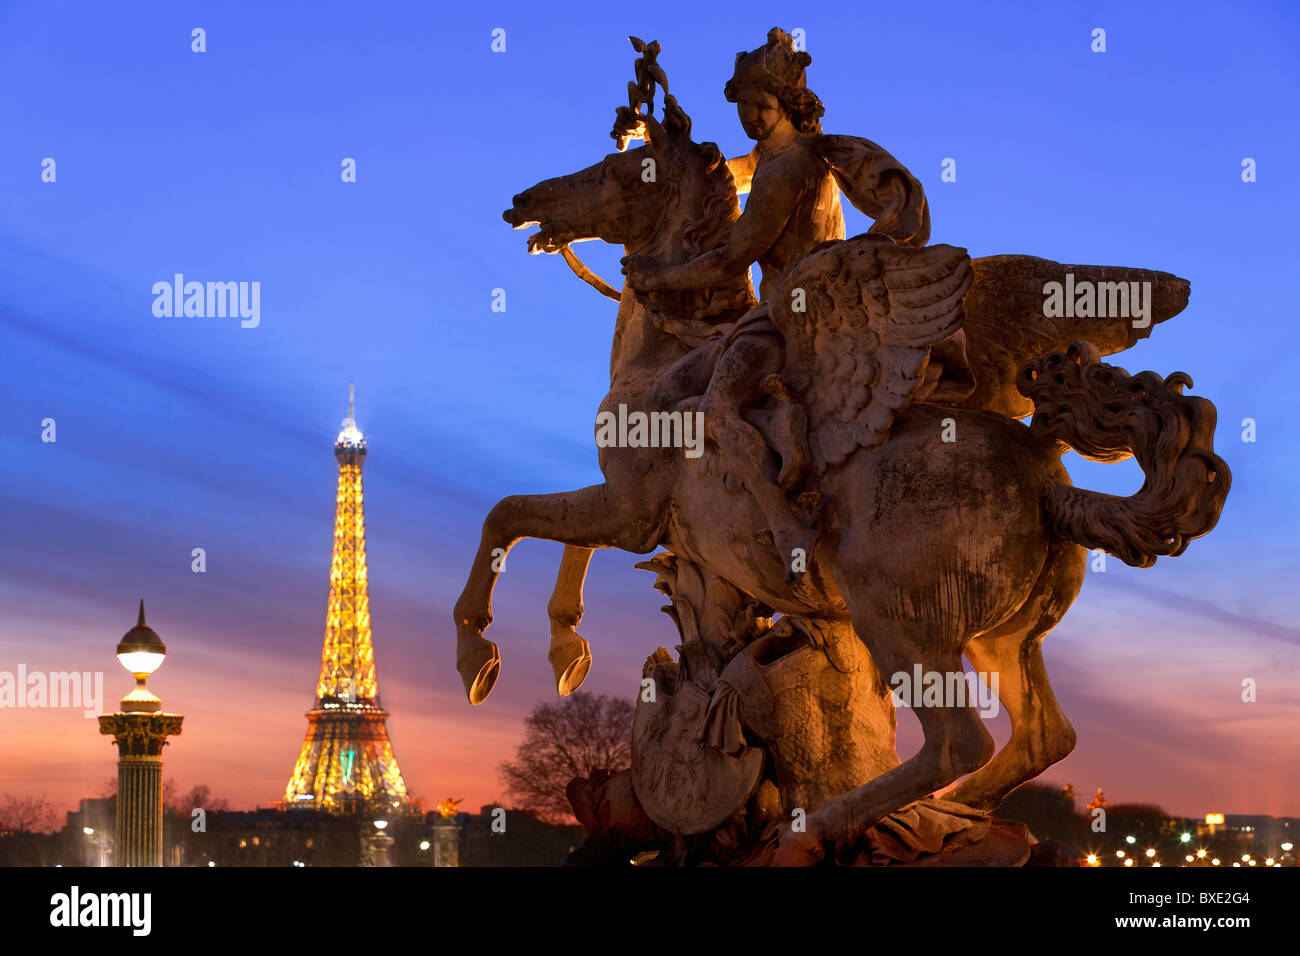 Paris, Jardin des Tuileries and Eiffel Tower - Stock Image